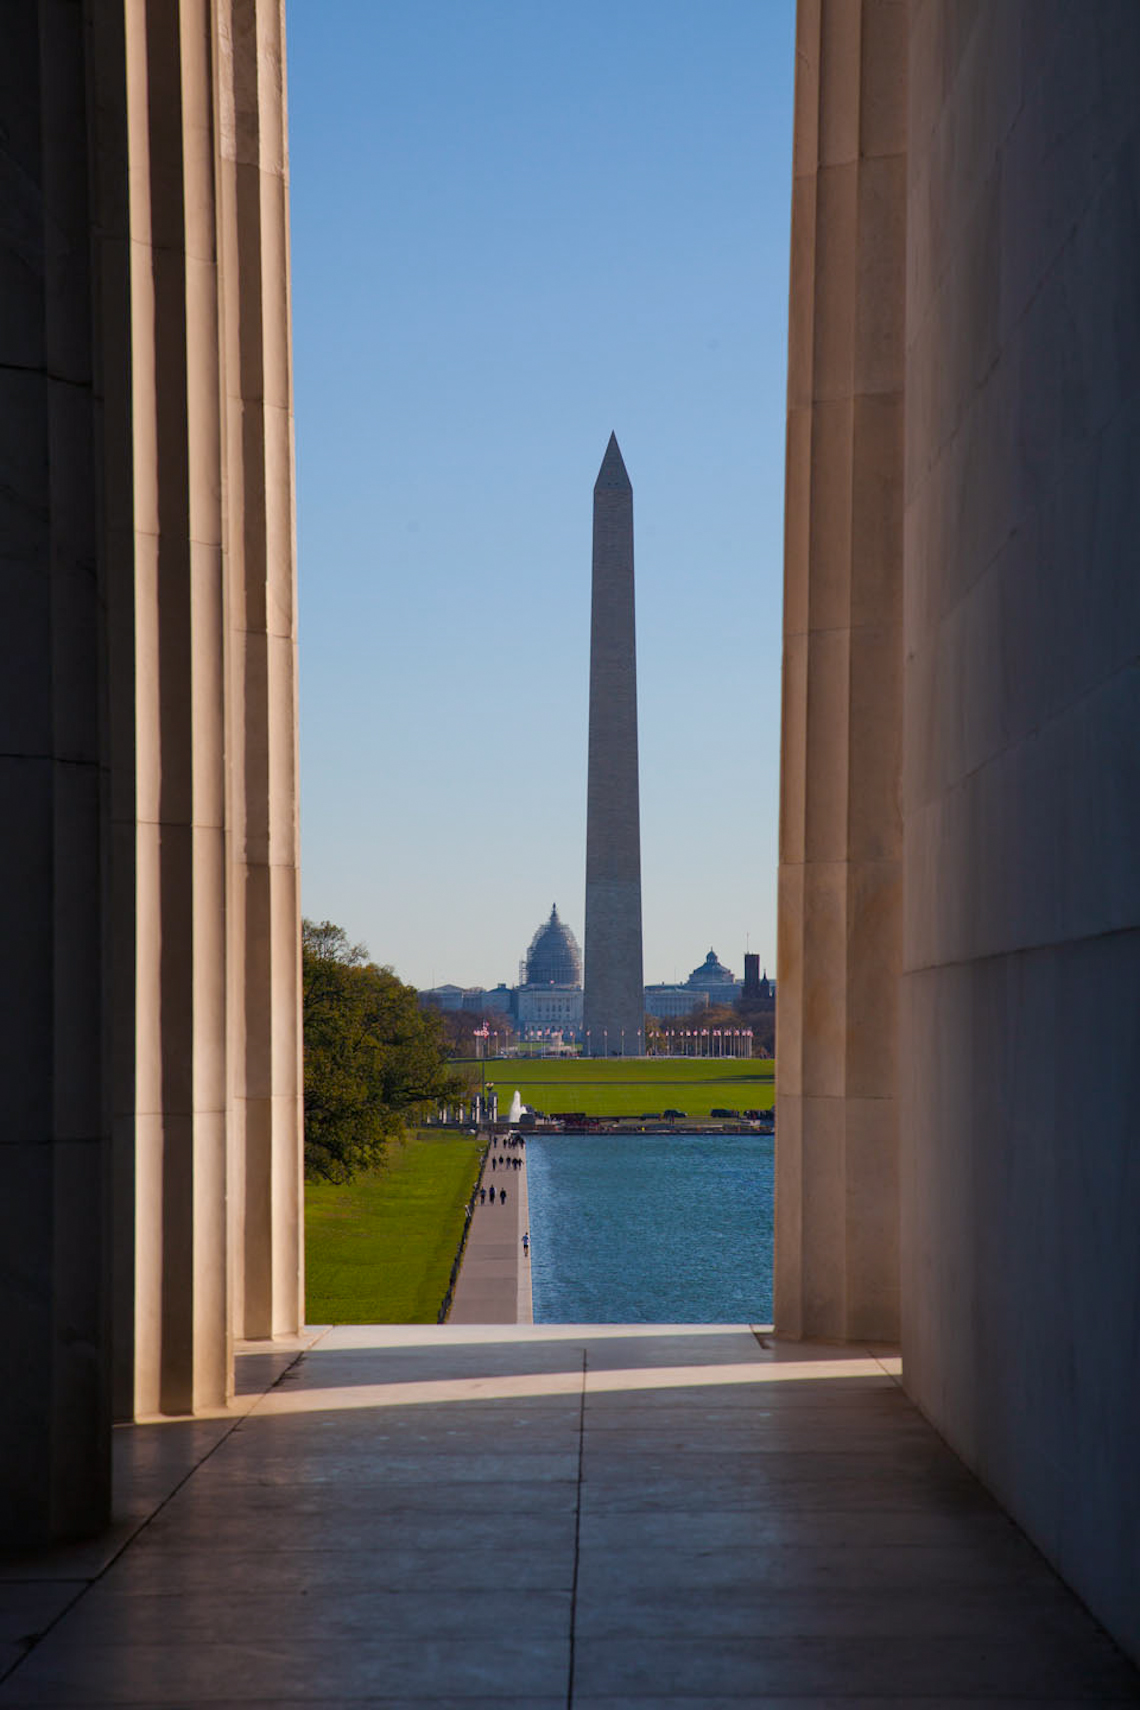 Washington-Monument-seen-from-between-lincoln-memorial-columns360